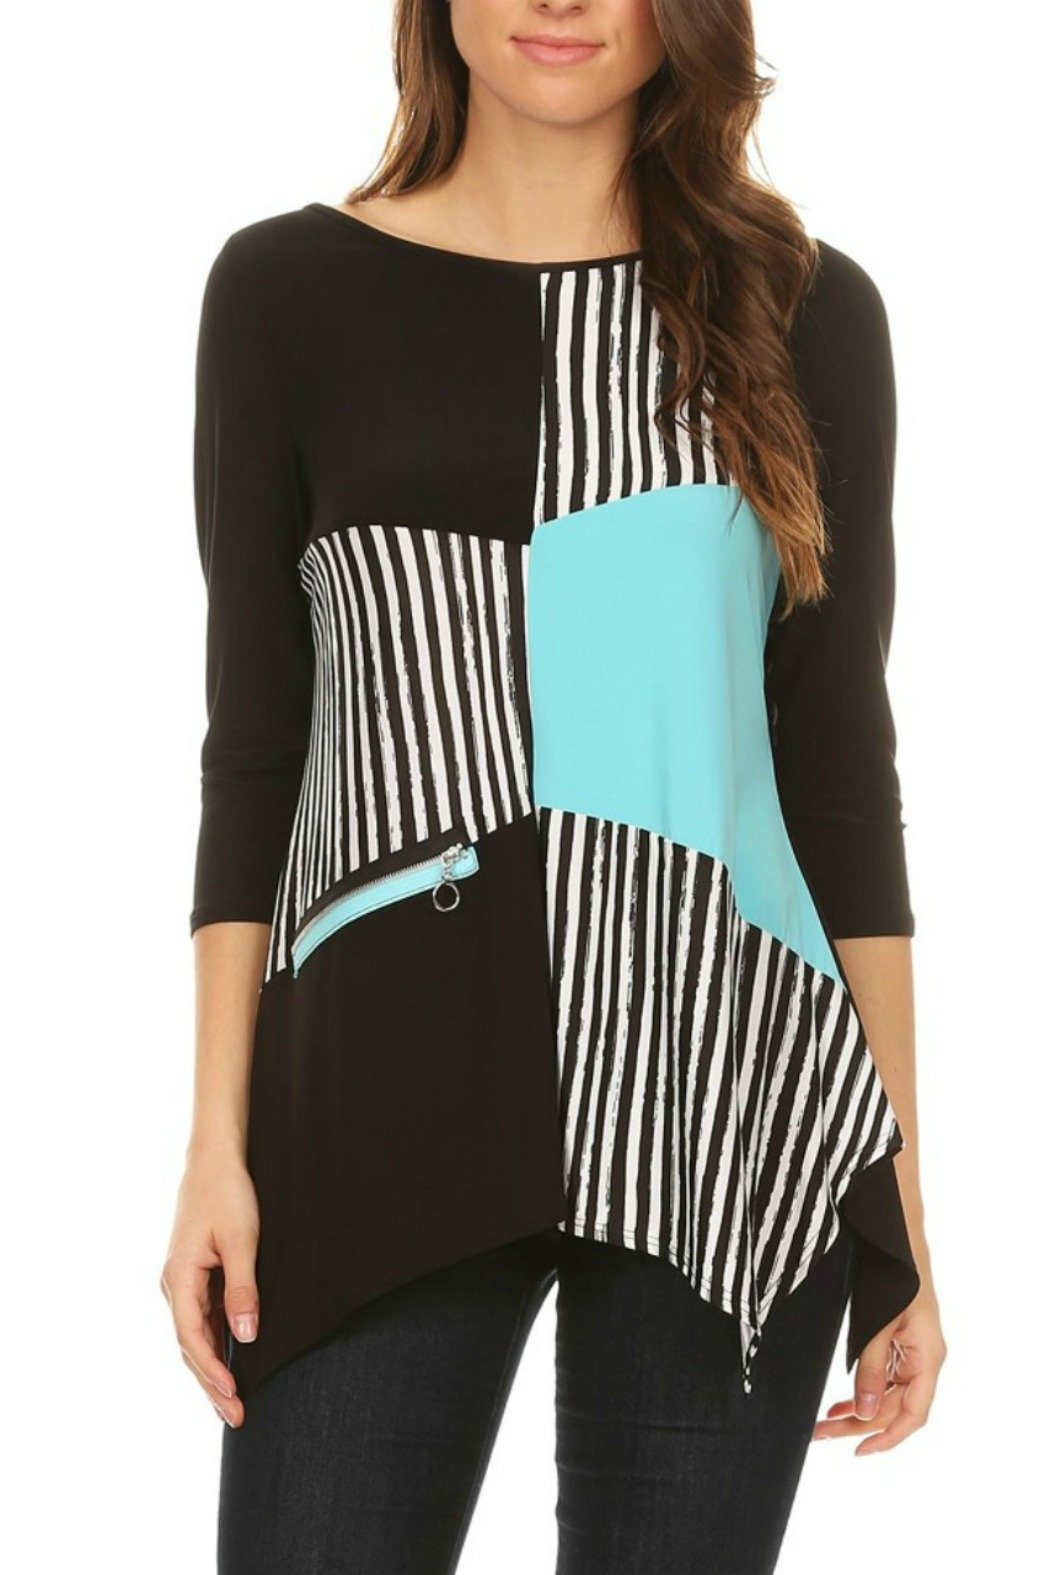 Come N See Asymmetric Stripy Blouse - Front Cropped Image